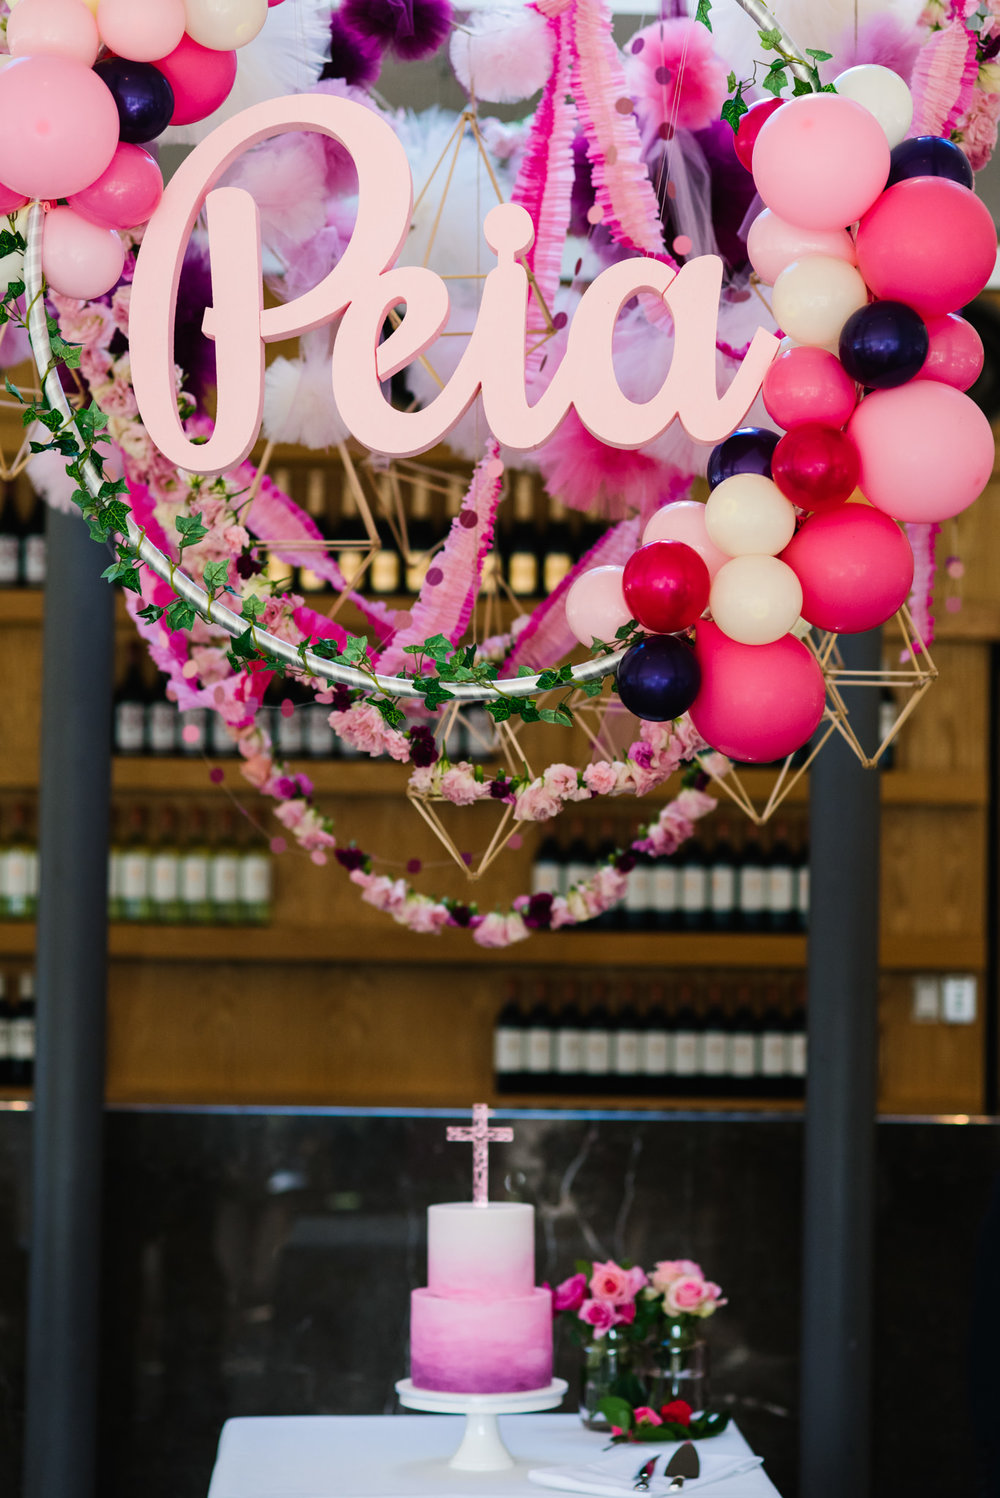 Cake table with balloons and name sign